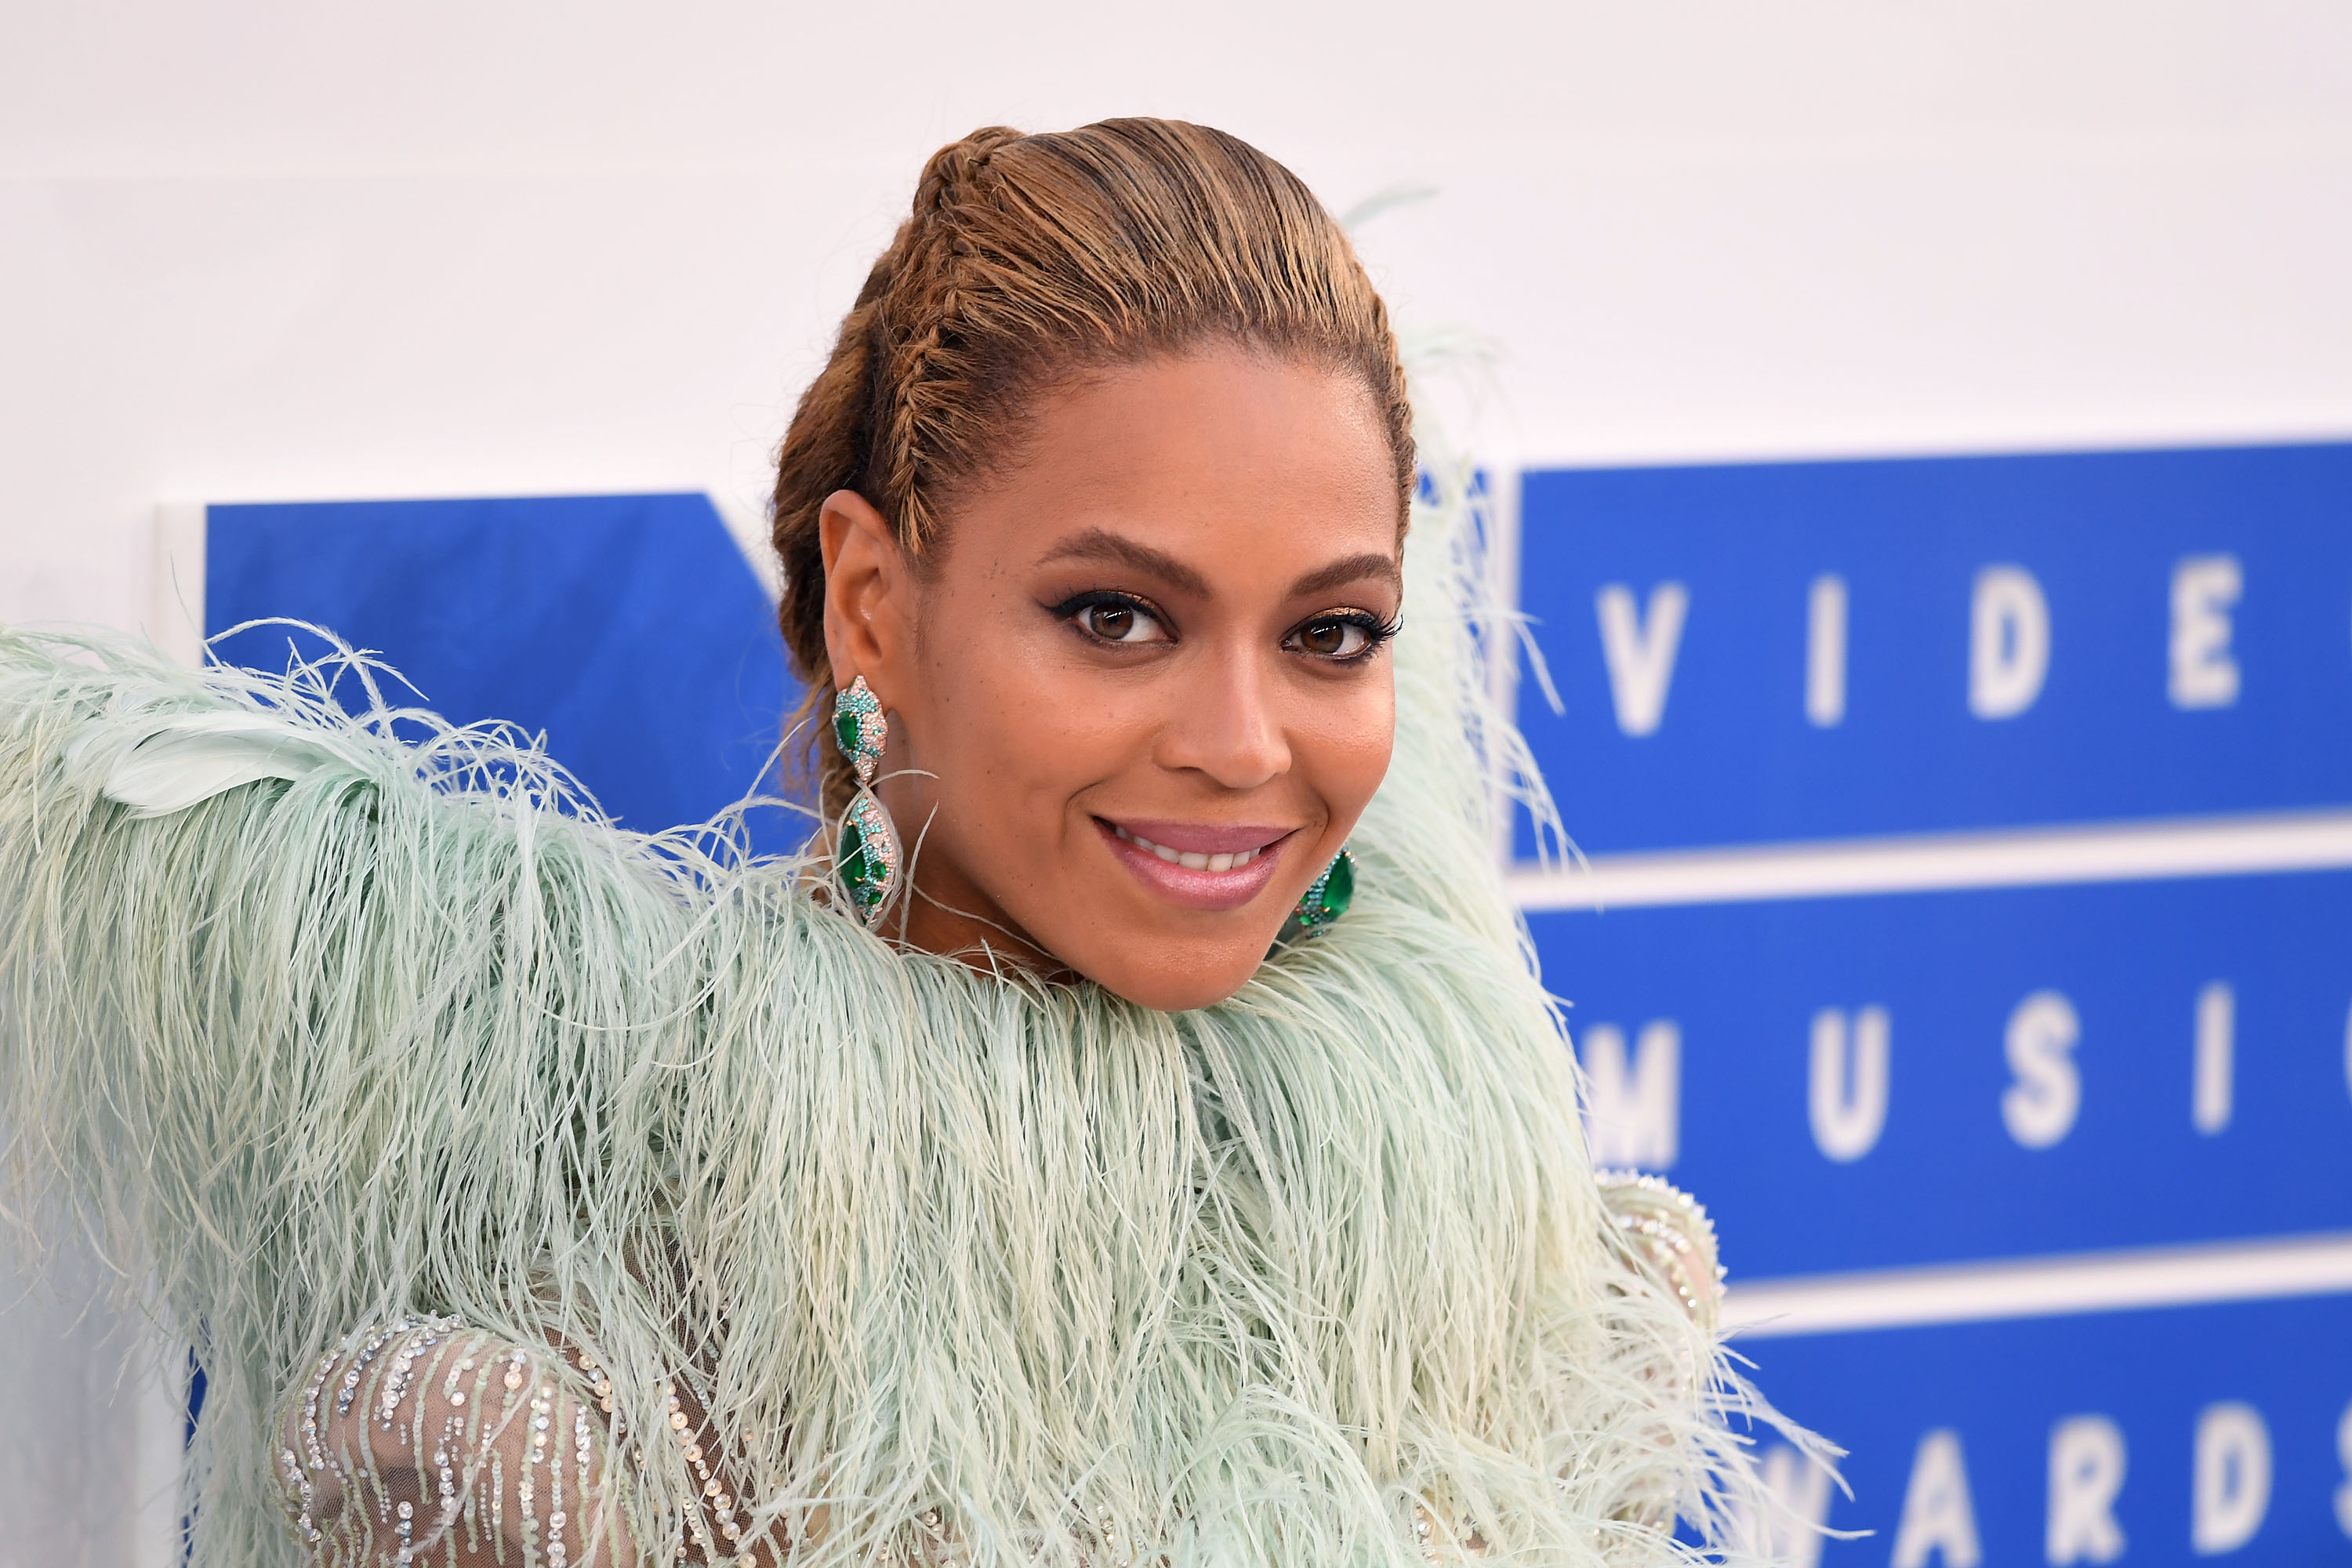 Beyoncé came *so close* to actually breaking Twitter when she announced her pregnancy